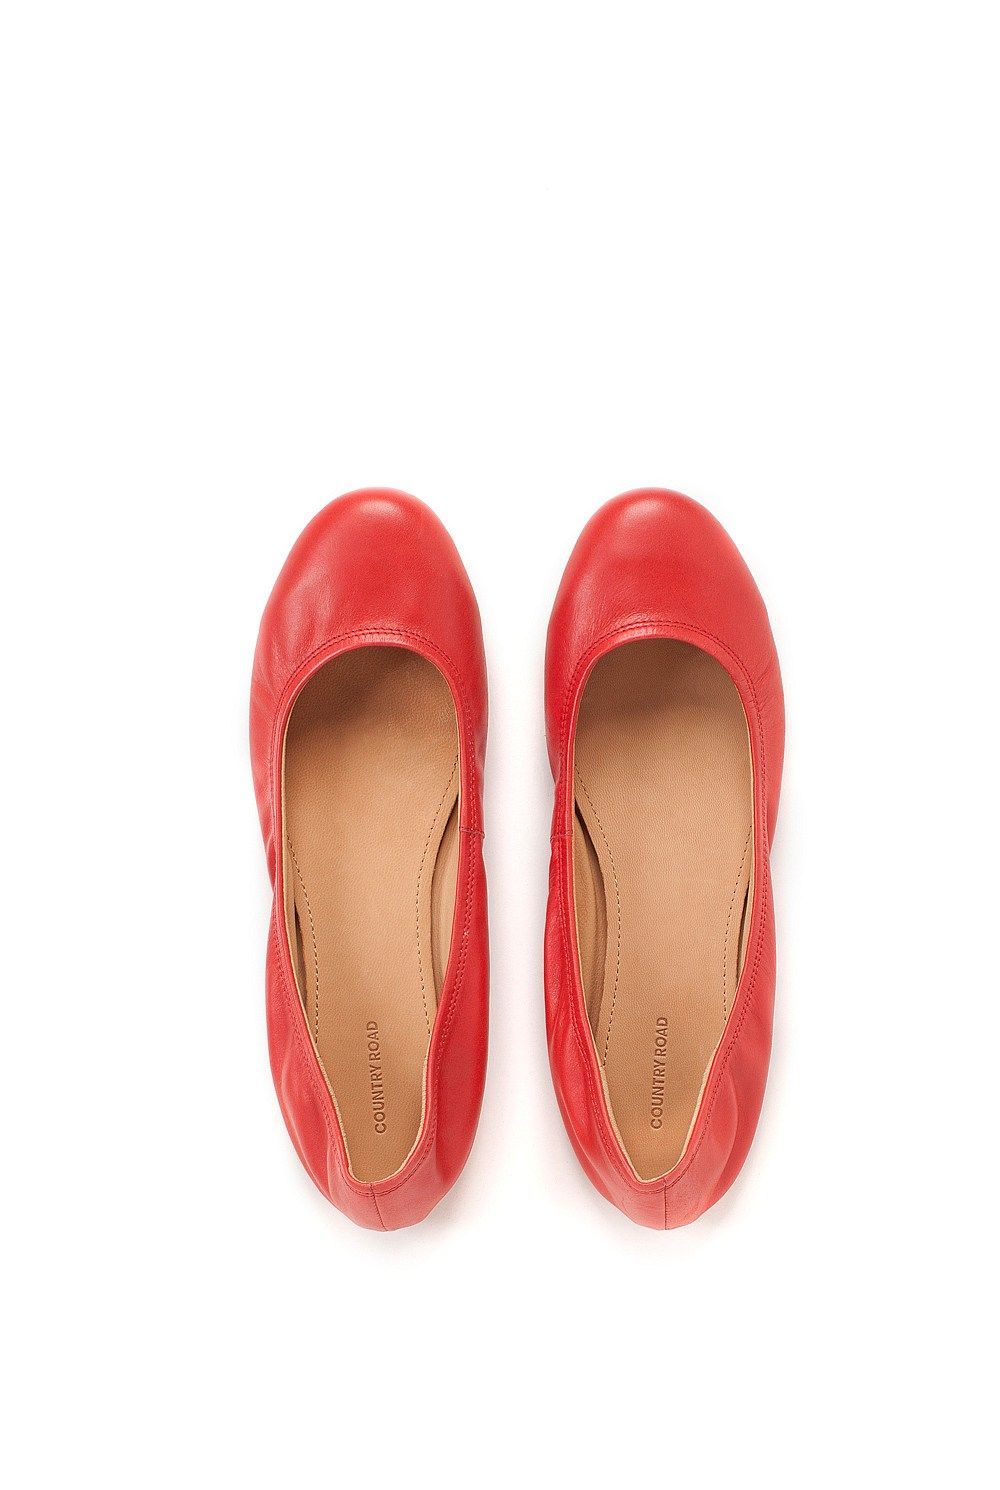 0e751ee5b78 Country Road - Women s Shoes   Footwear Online - Letitia Ballet